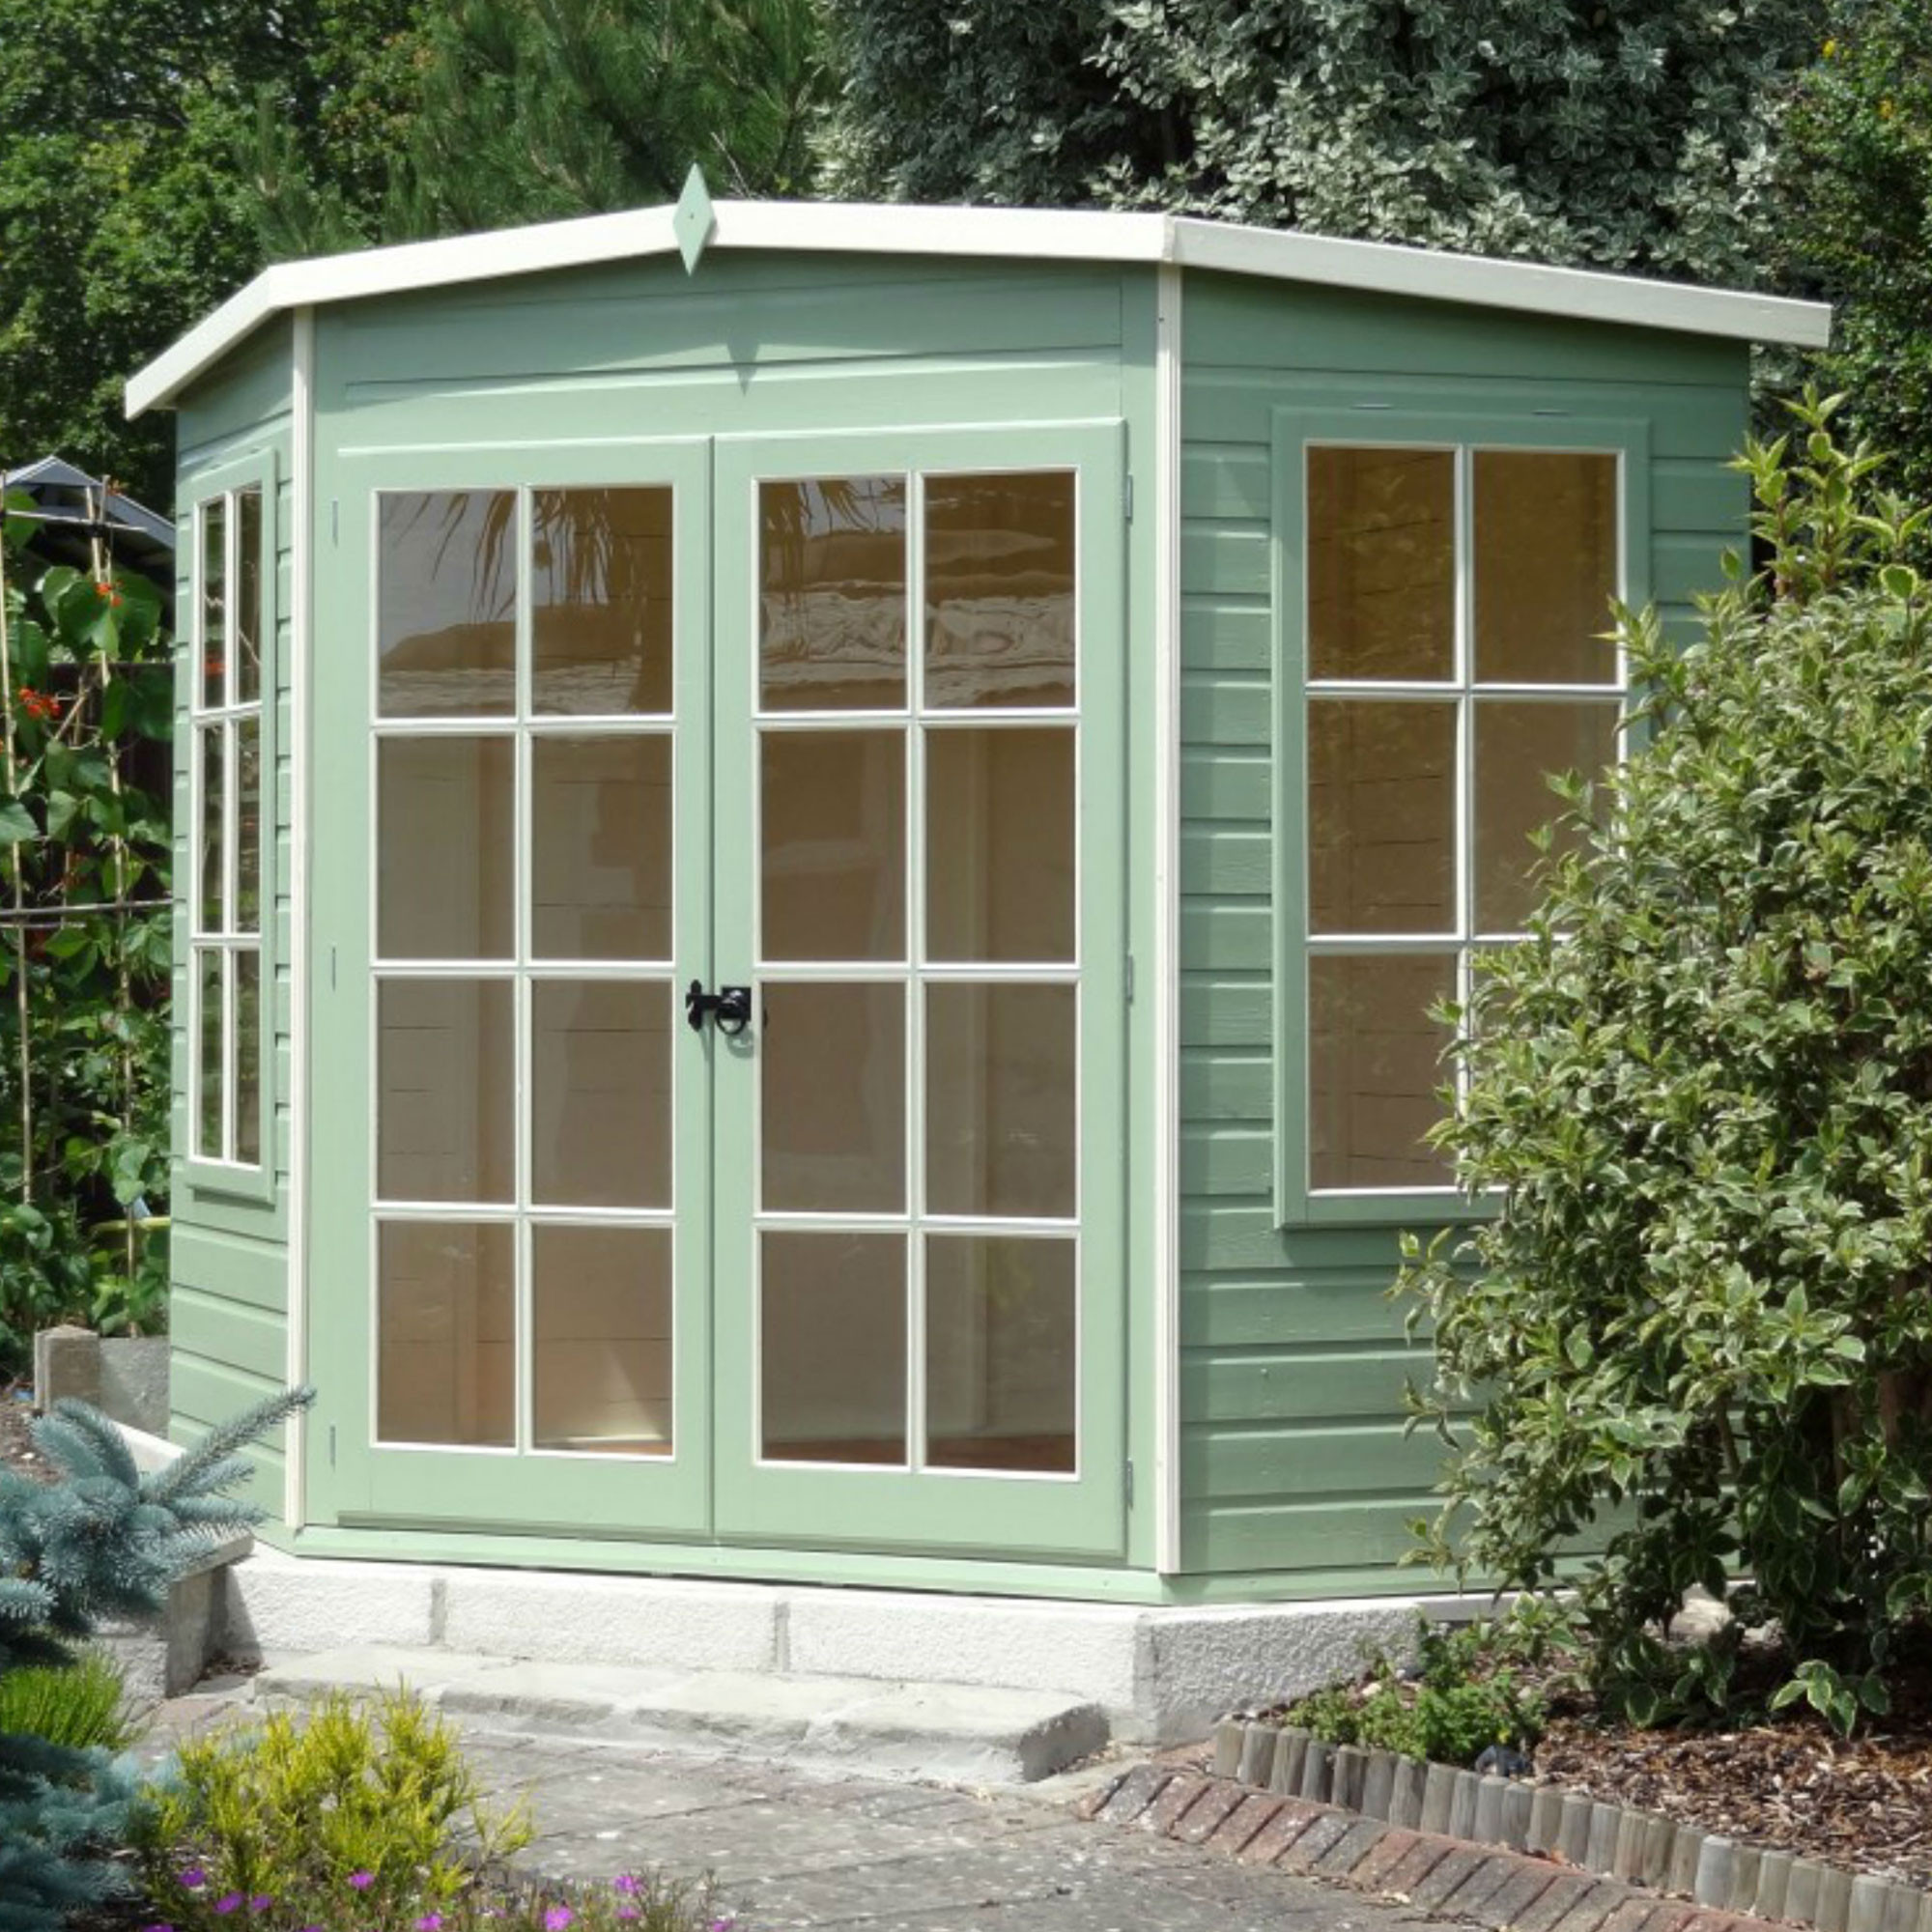 7'5x7'5 Shire Hampton Traditional Corner Wooden Summer House